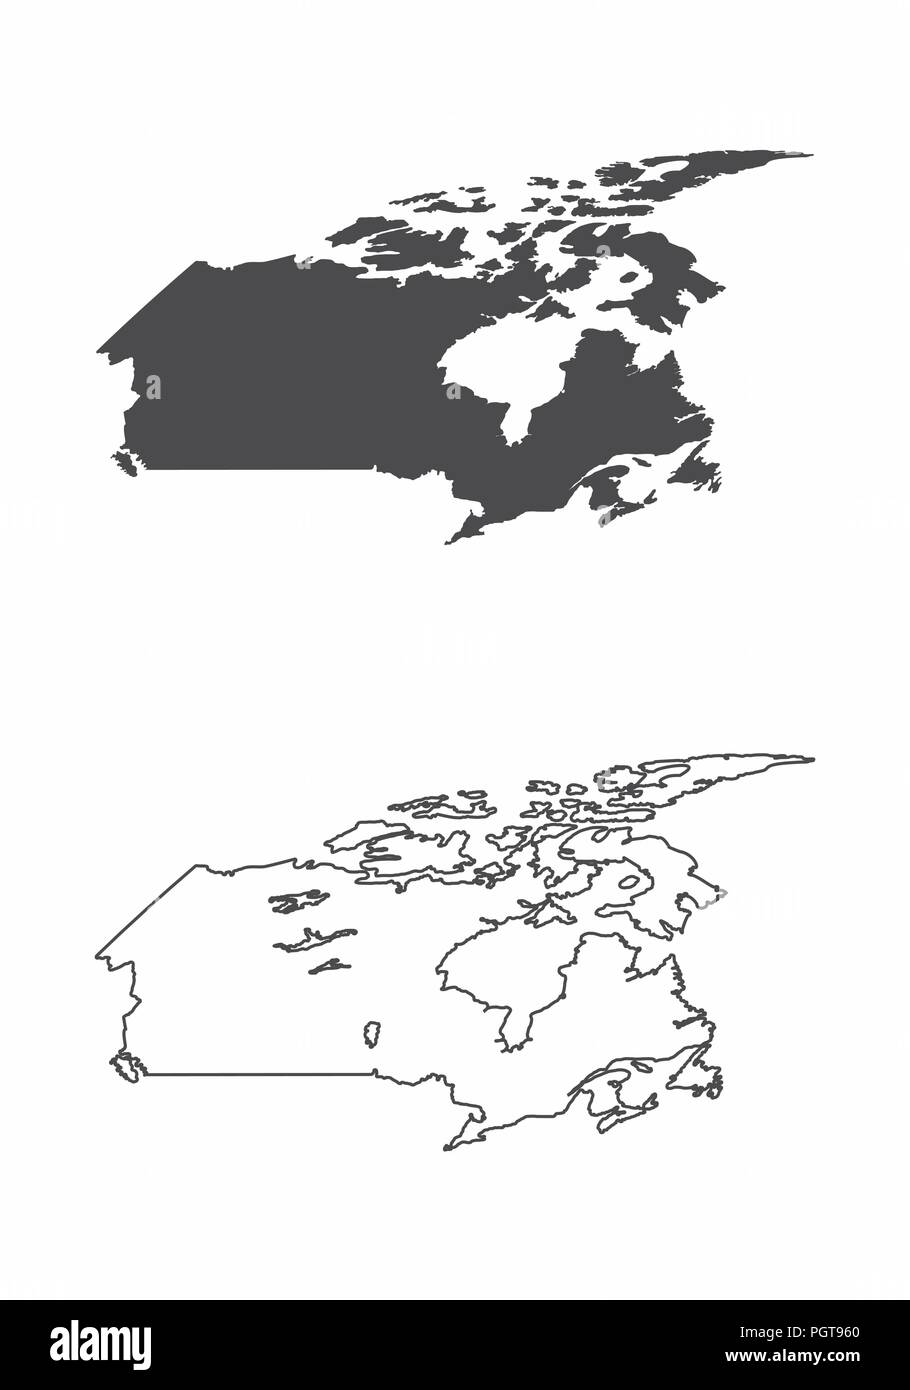 Simplified maps of Canada. Black and white outlines. - Stock Vector